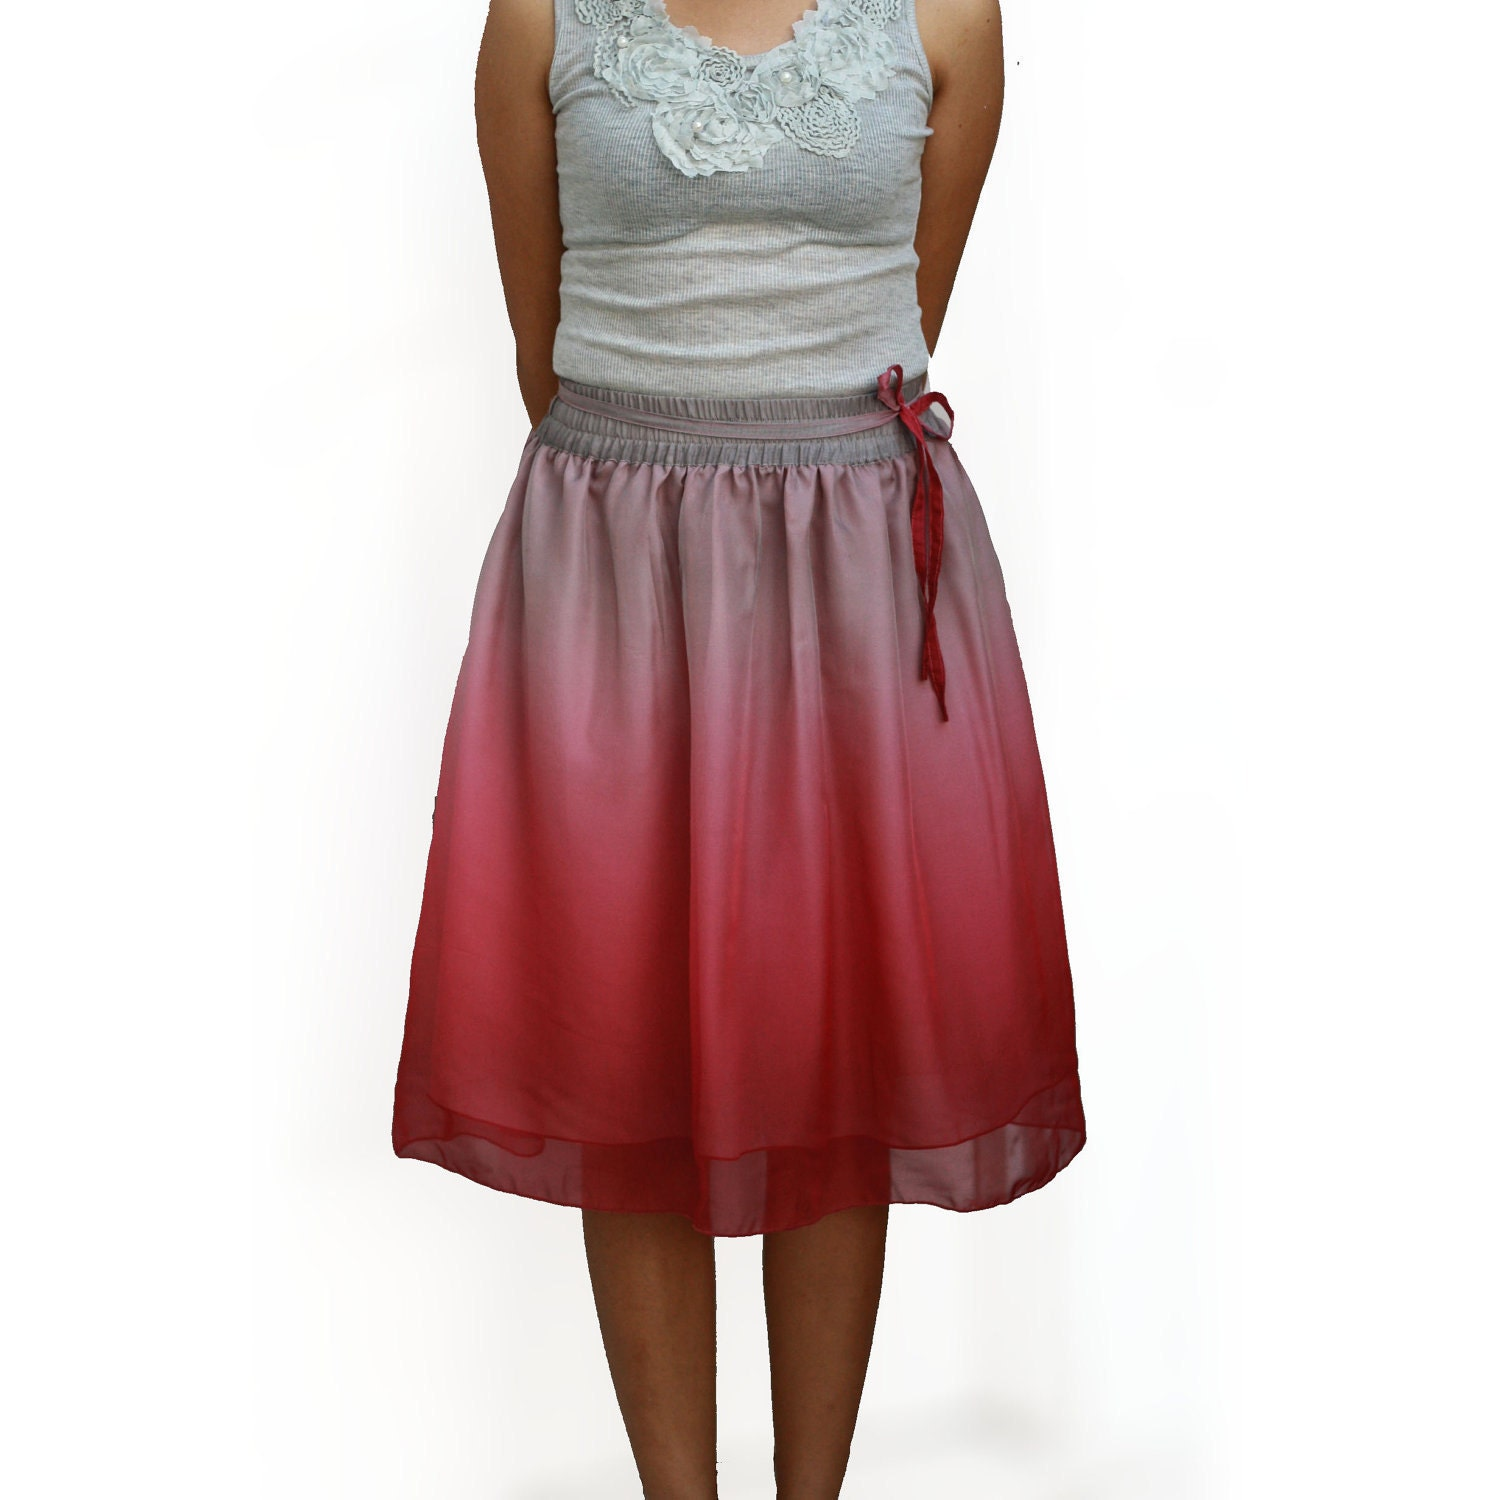 ombre pink and grey chiffon midi skirt